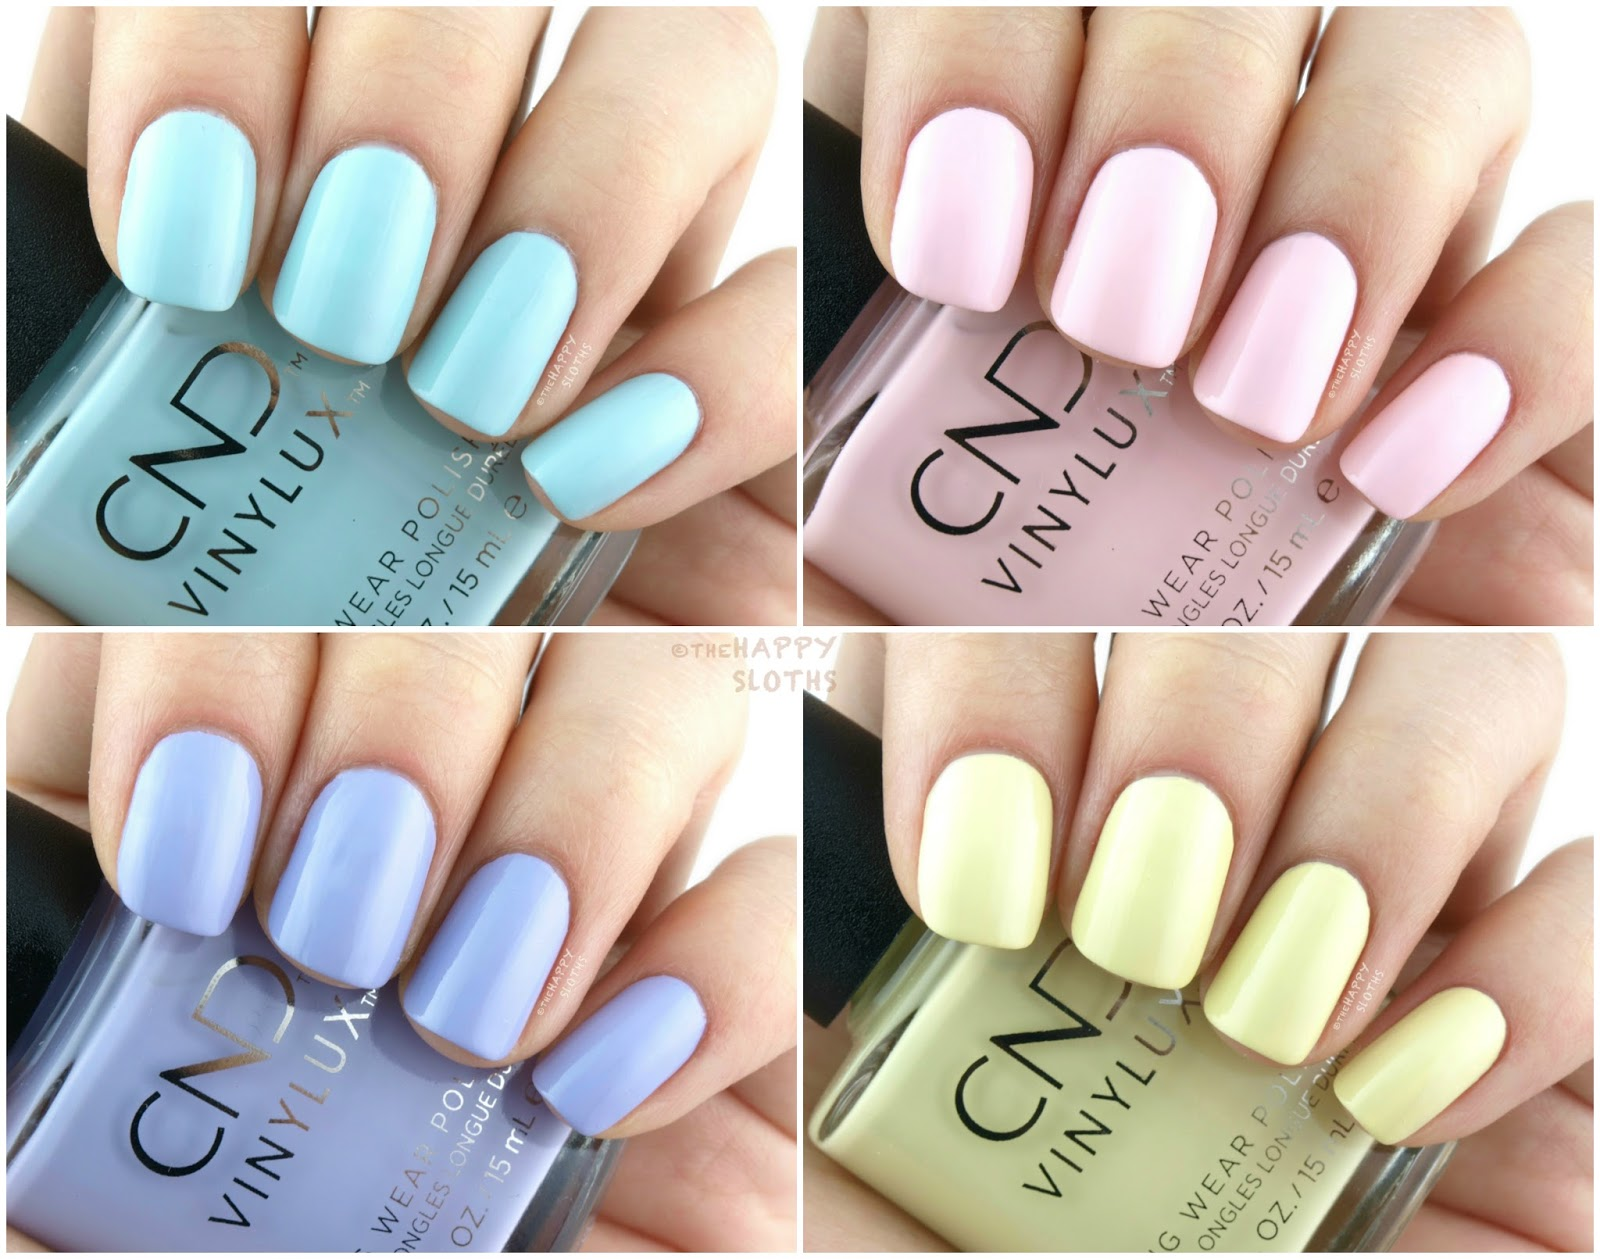 CND | Spring 2018 Chic Shock Collection: Review and Swatches